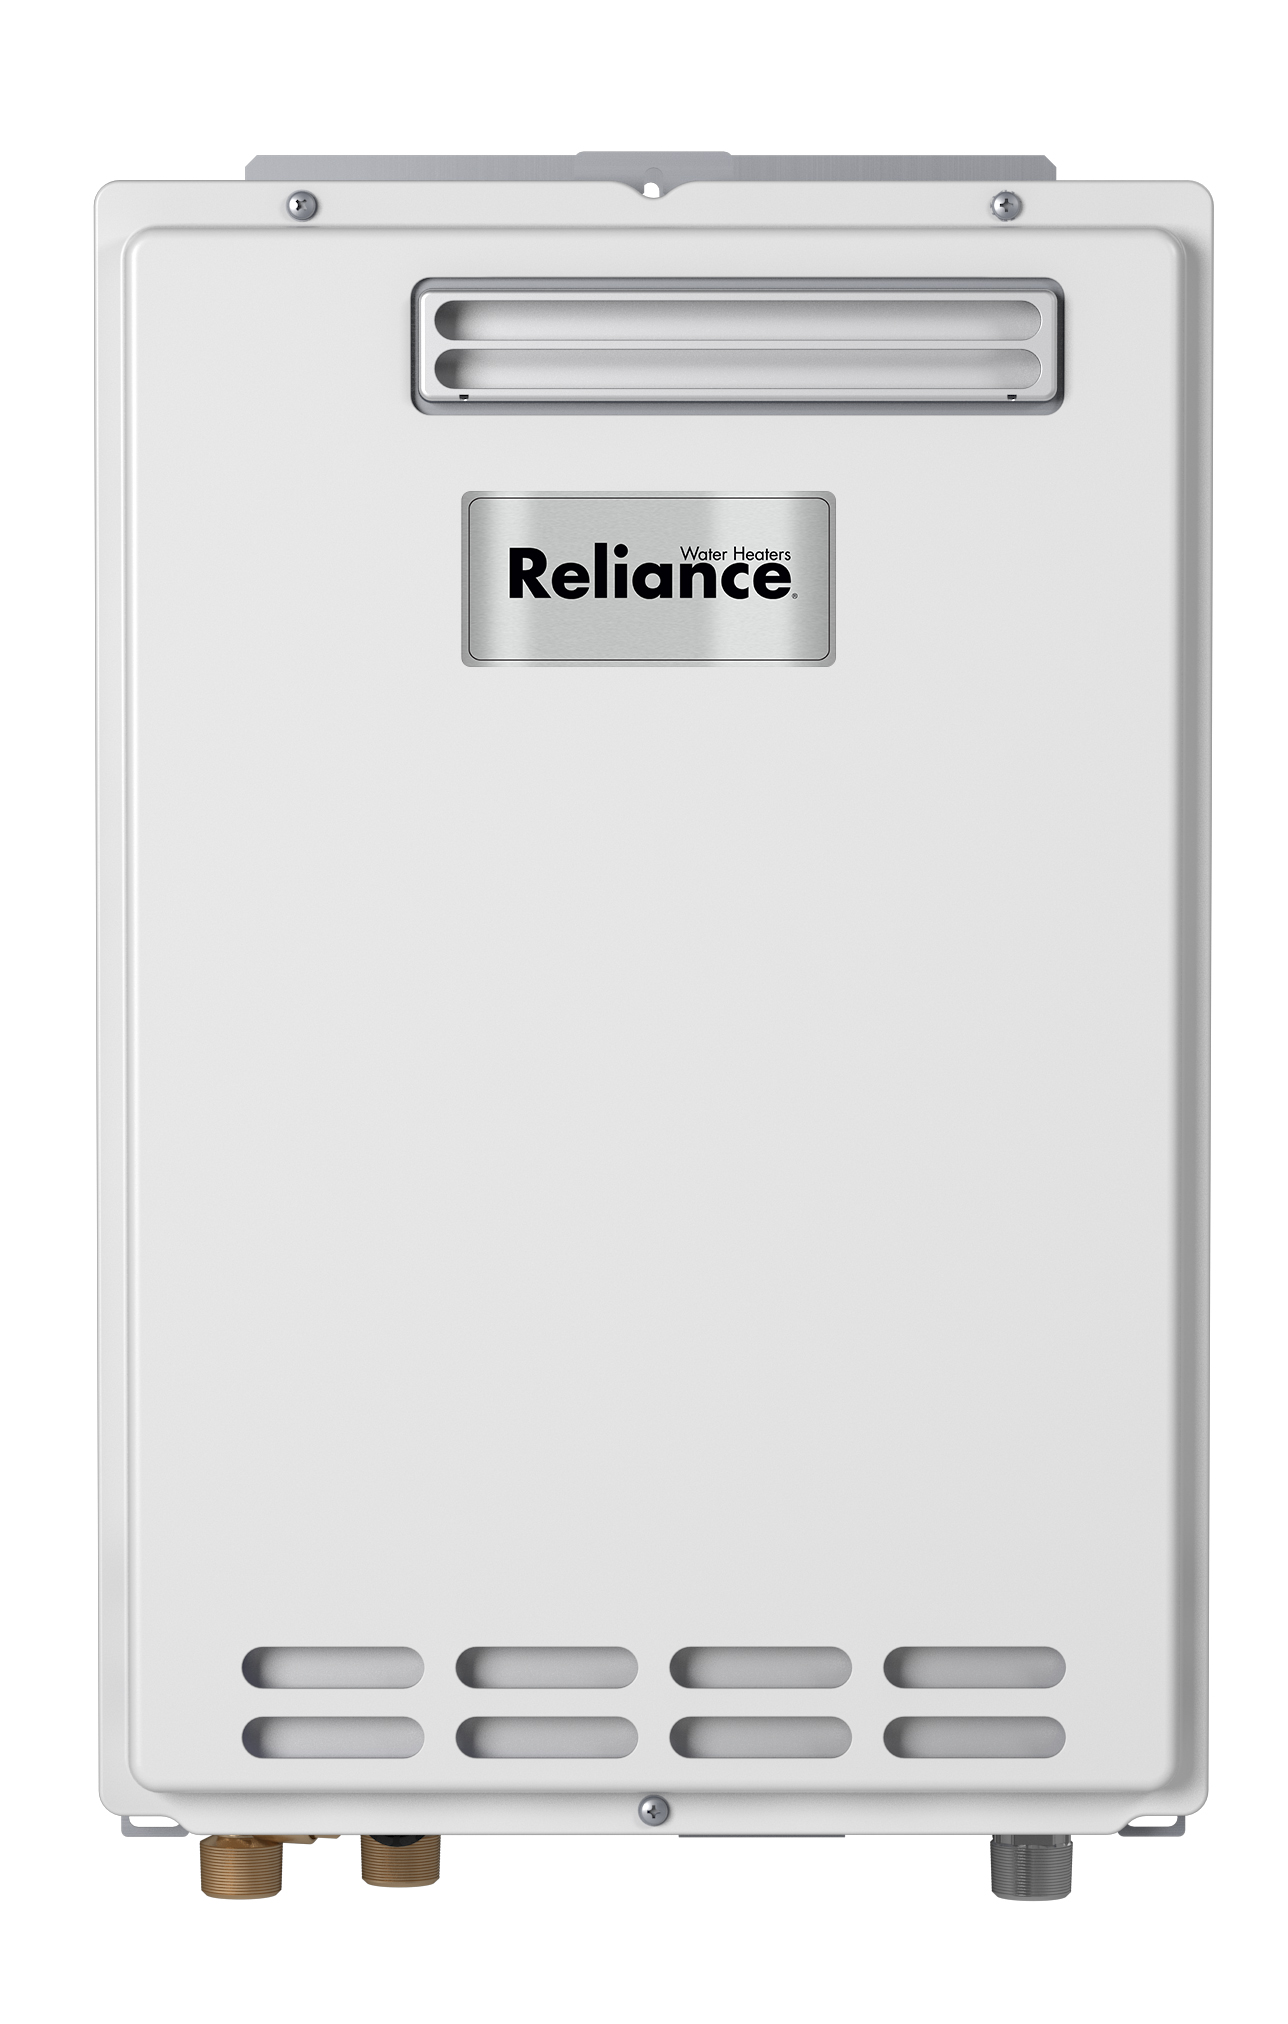 wiring diagram reliance hot water heater wiring products media bank reliance water heater reliance water on wiring diagram reliance hot water heater